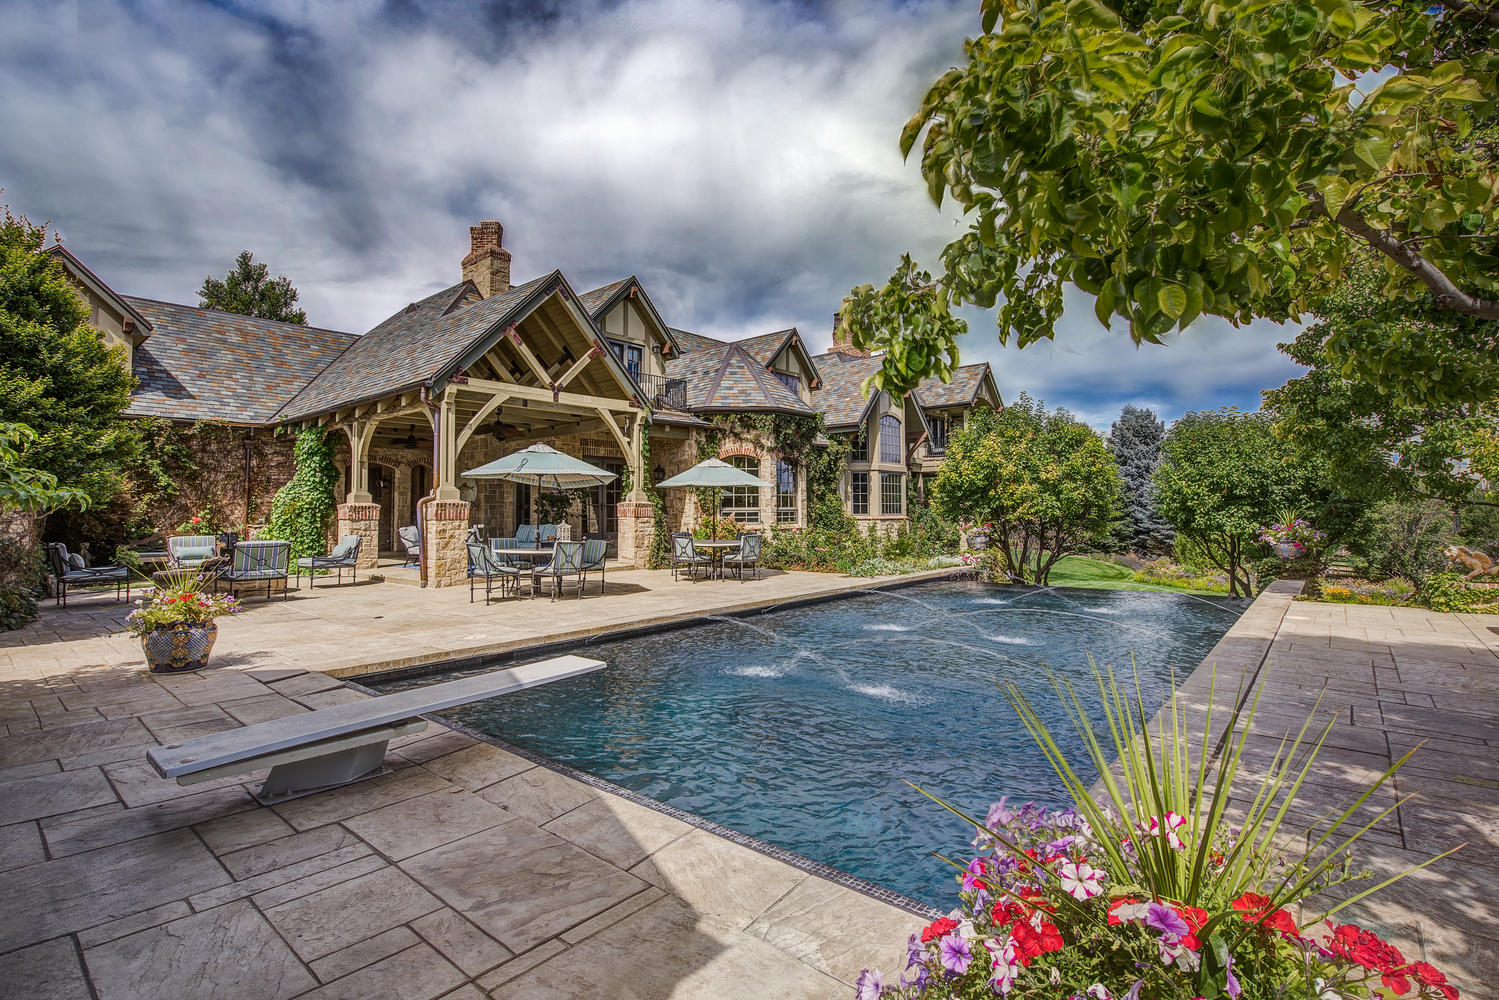 Single Family Home for Active at English Manor House with Splendid Sophistication & Elegant Appointments 4580 S Franklin Street Cherry Hills Village, Colorado 80113 United States